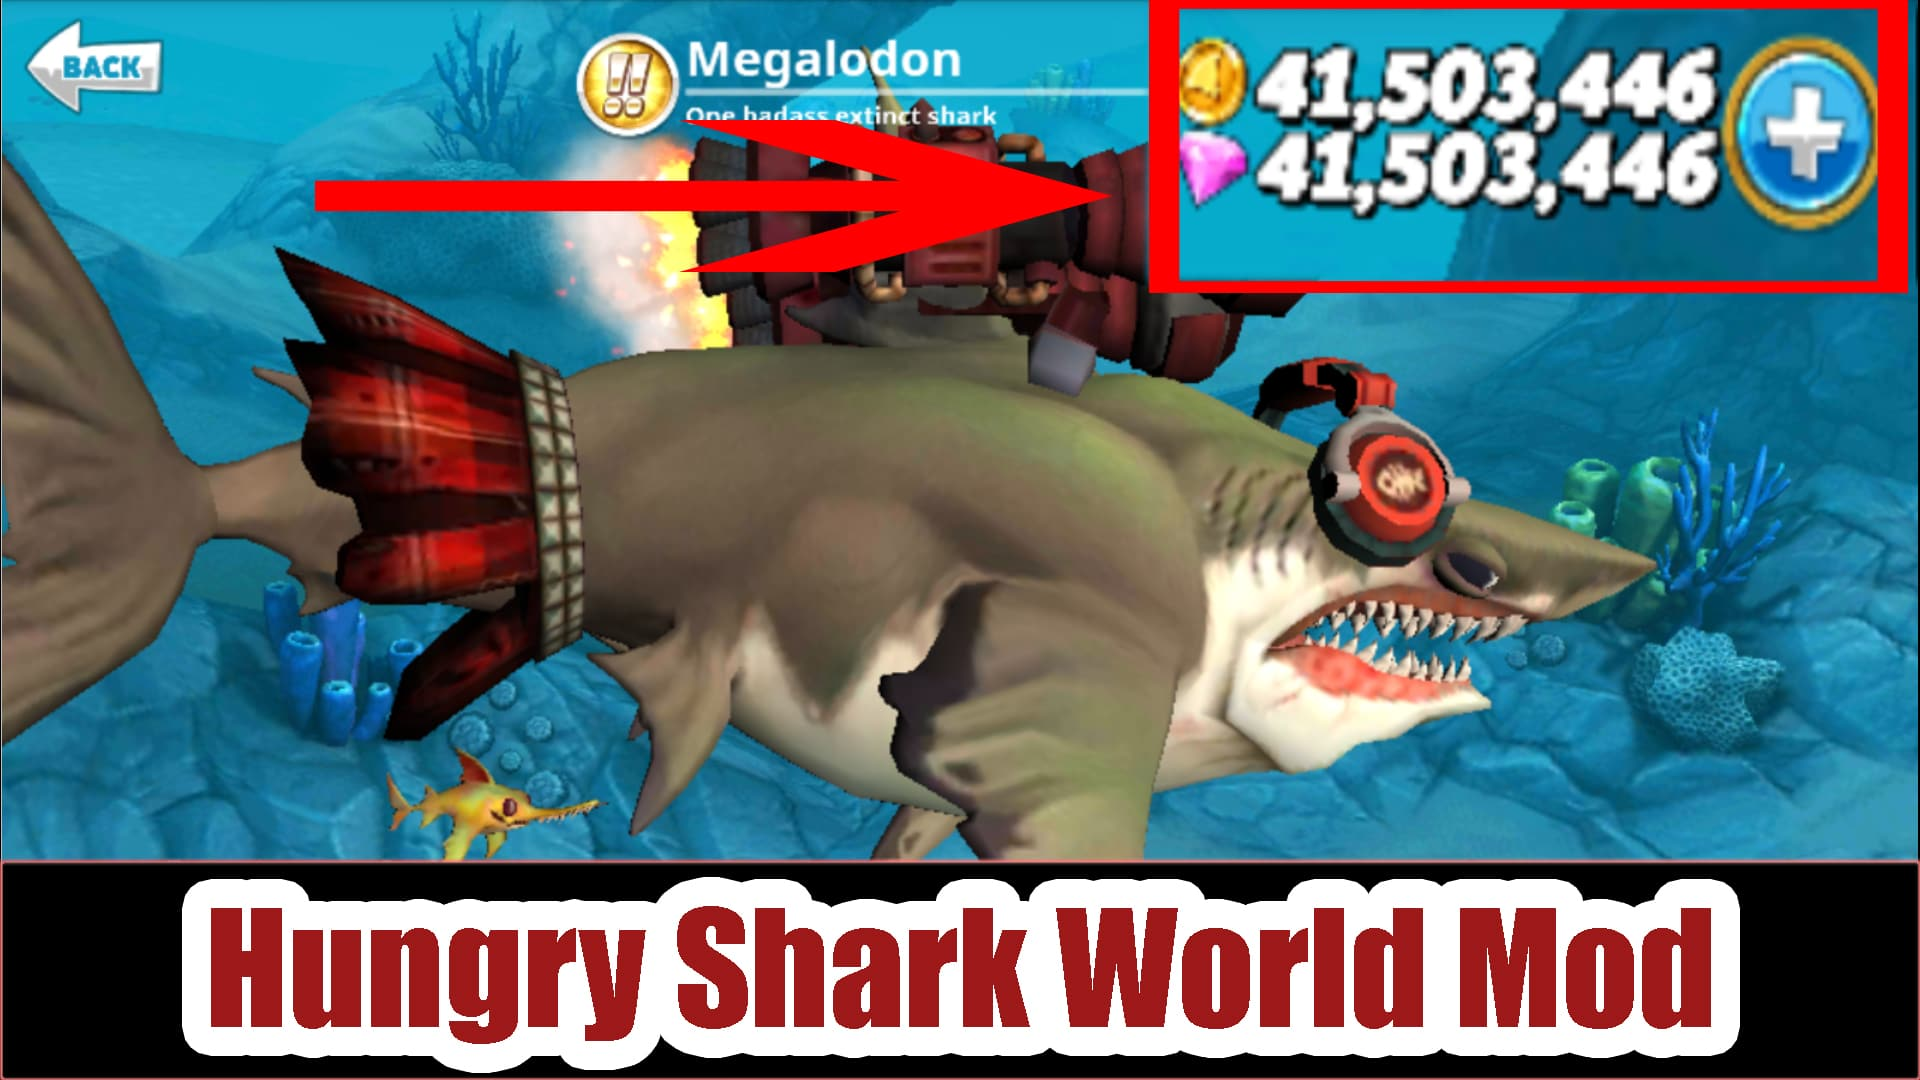 hungry shark world mod apk ios download